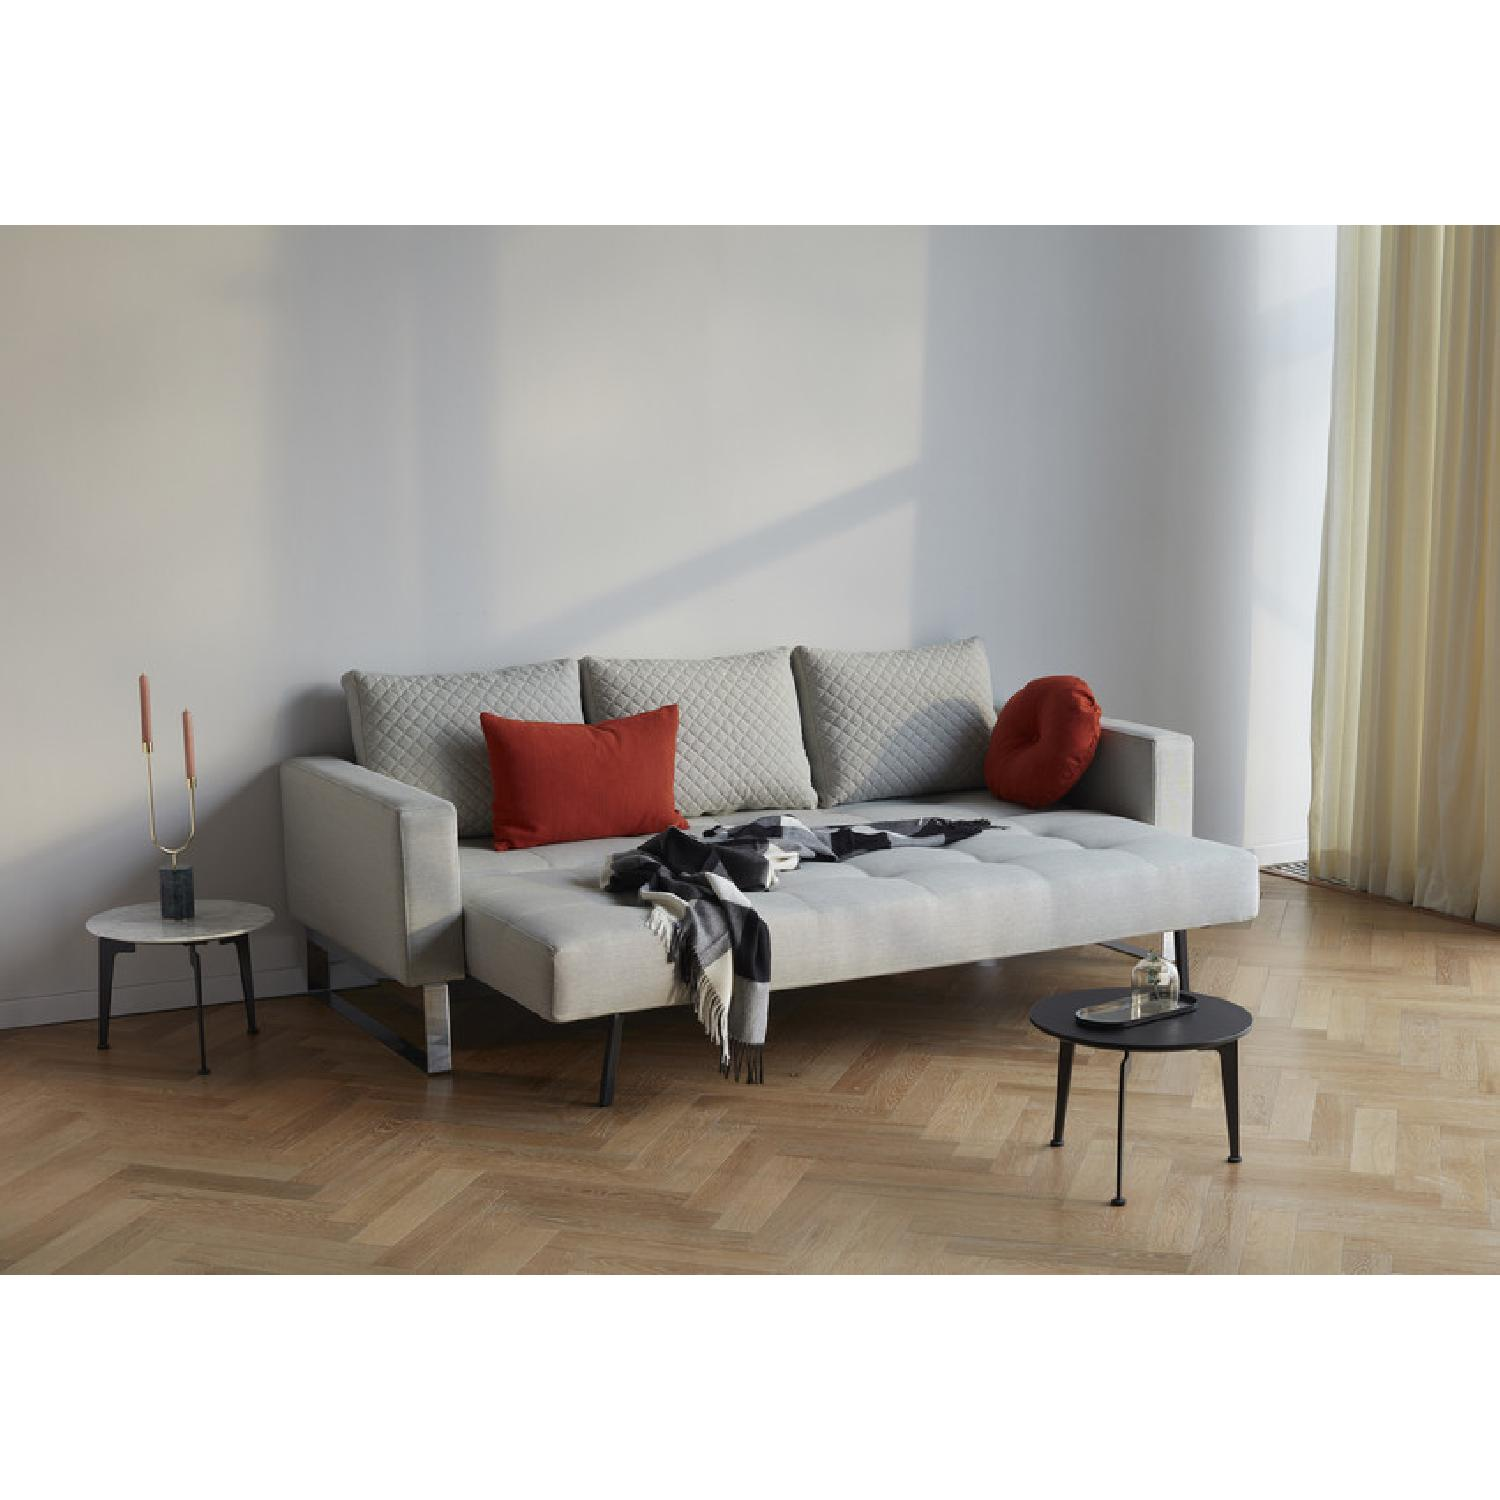 Innovation USA Cassius Quilt Deluxe Sleeper Sofa - image-3